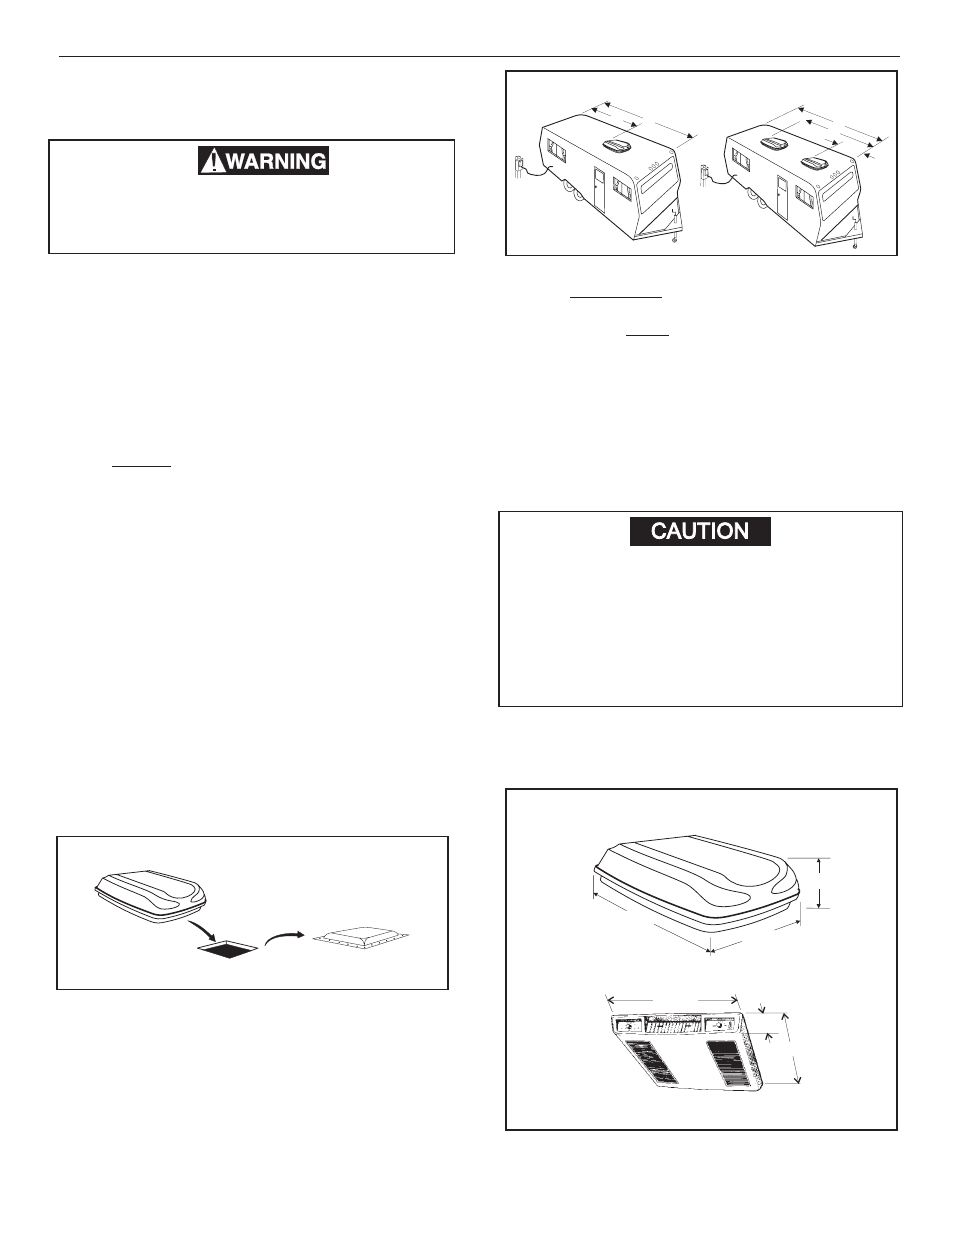 Caution, Installation instructions | Dometic 600315 331 User